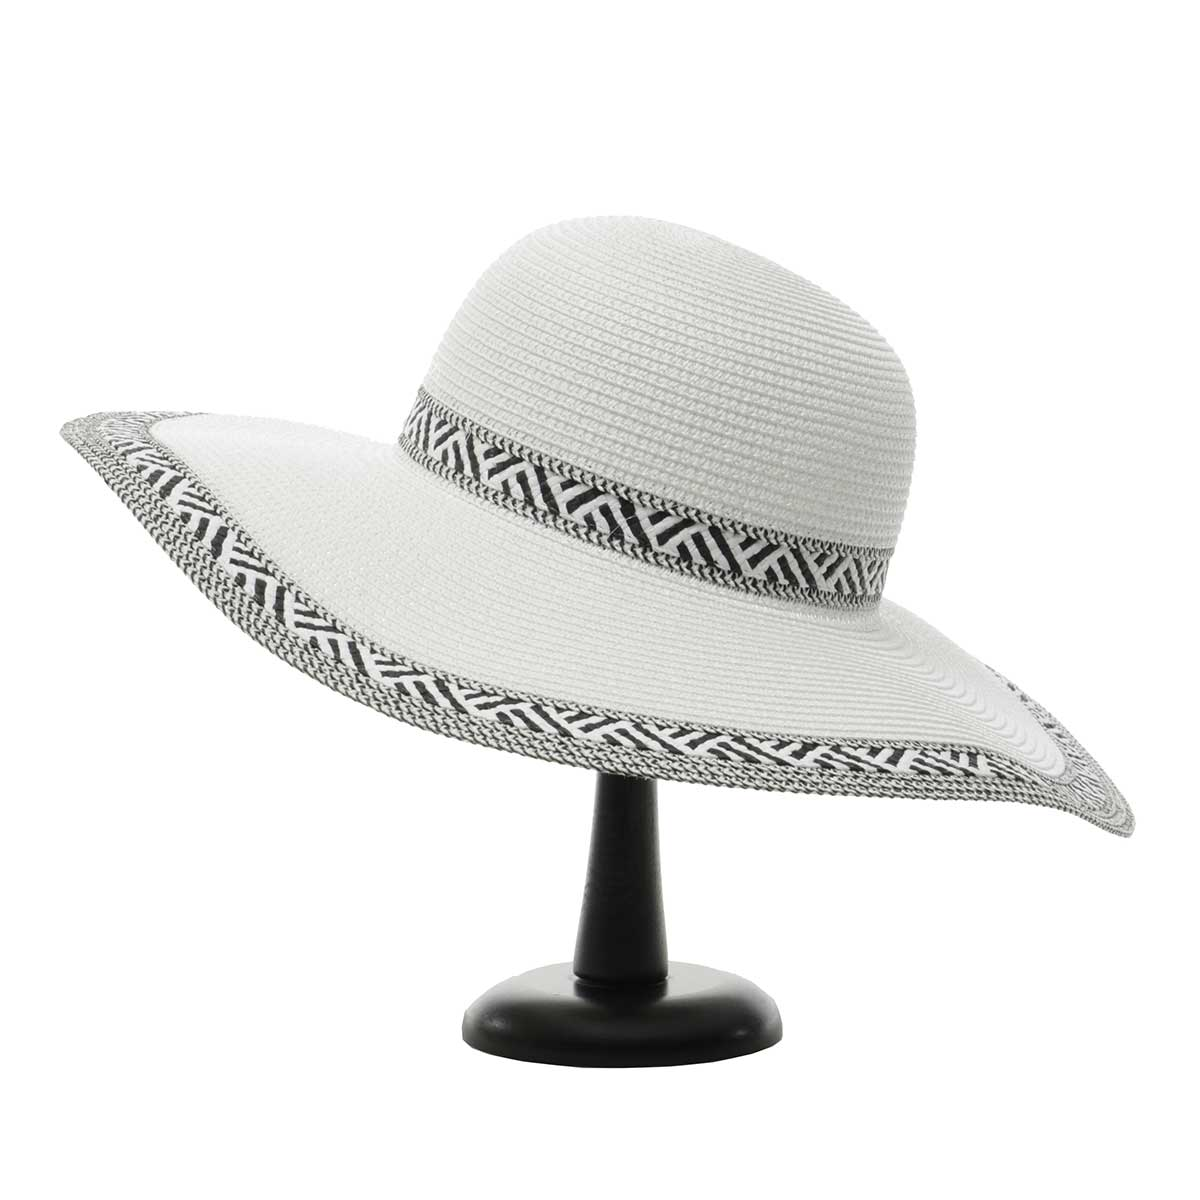 White Panama Hat with Black/White Trim